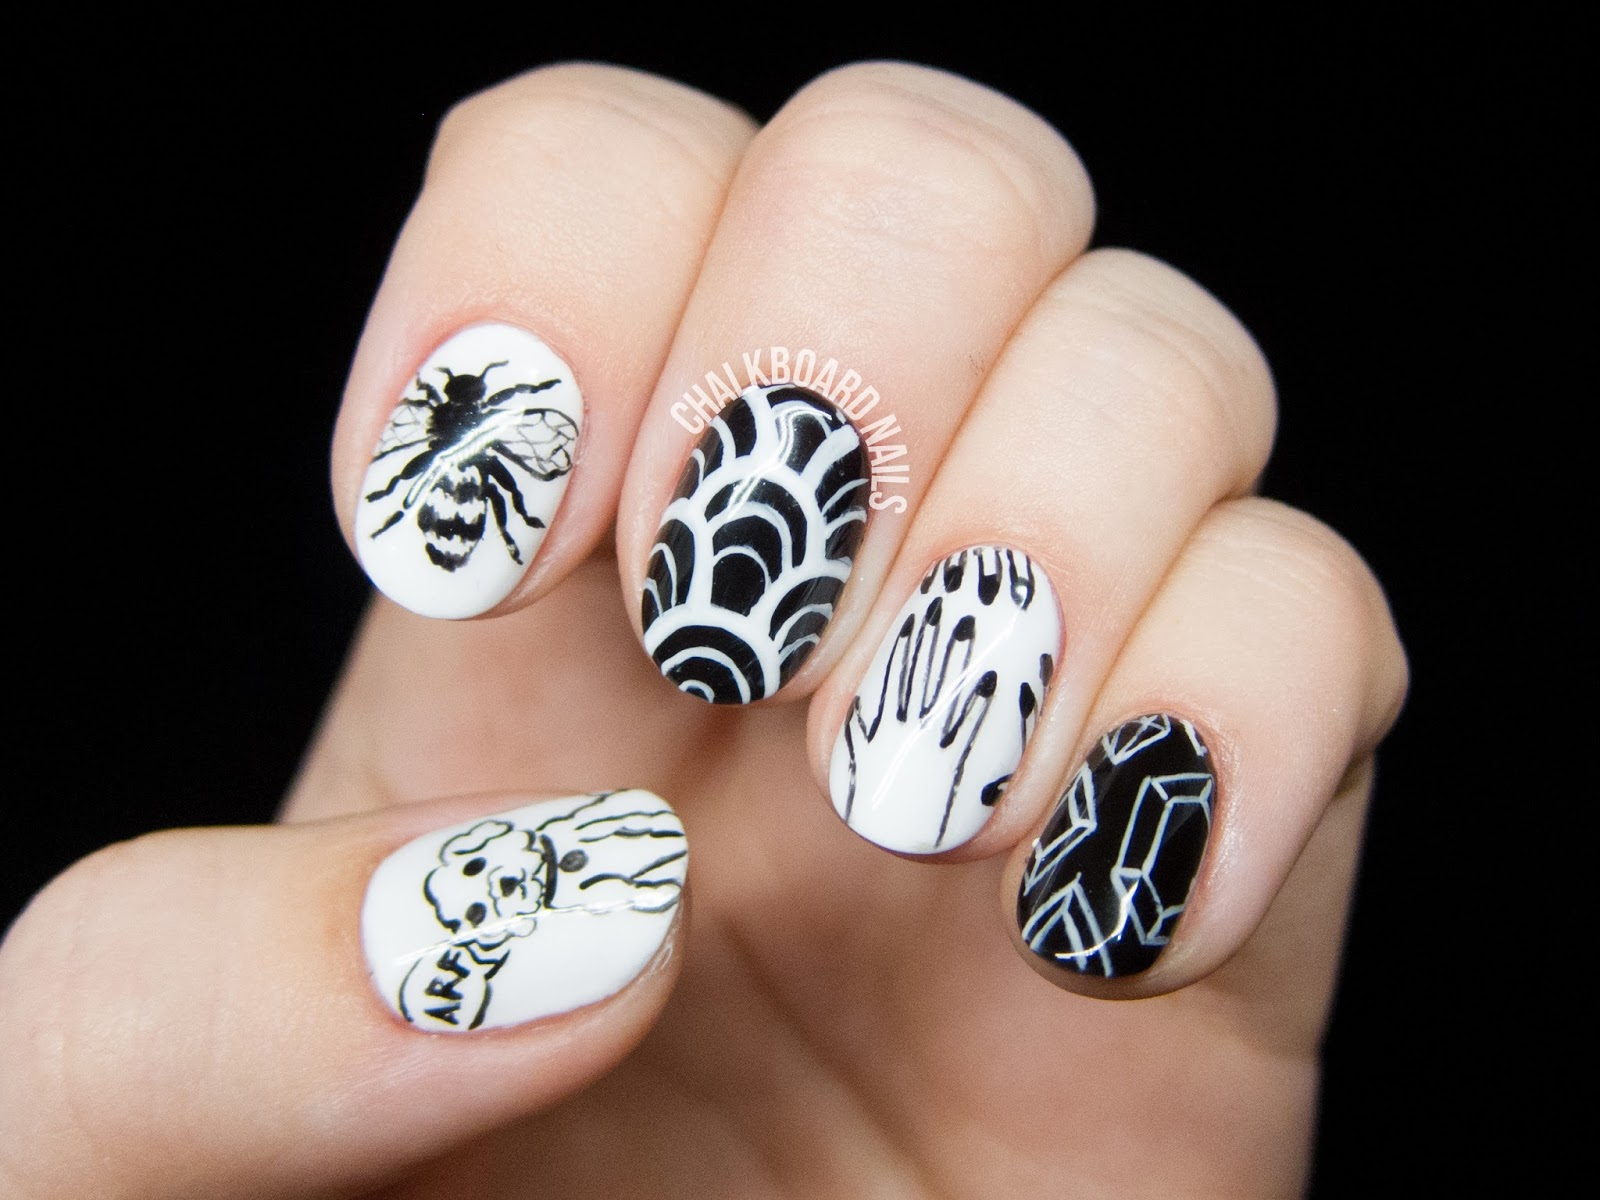 Freehand black and white nail art @chalkboardnails